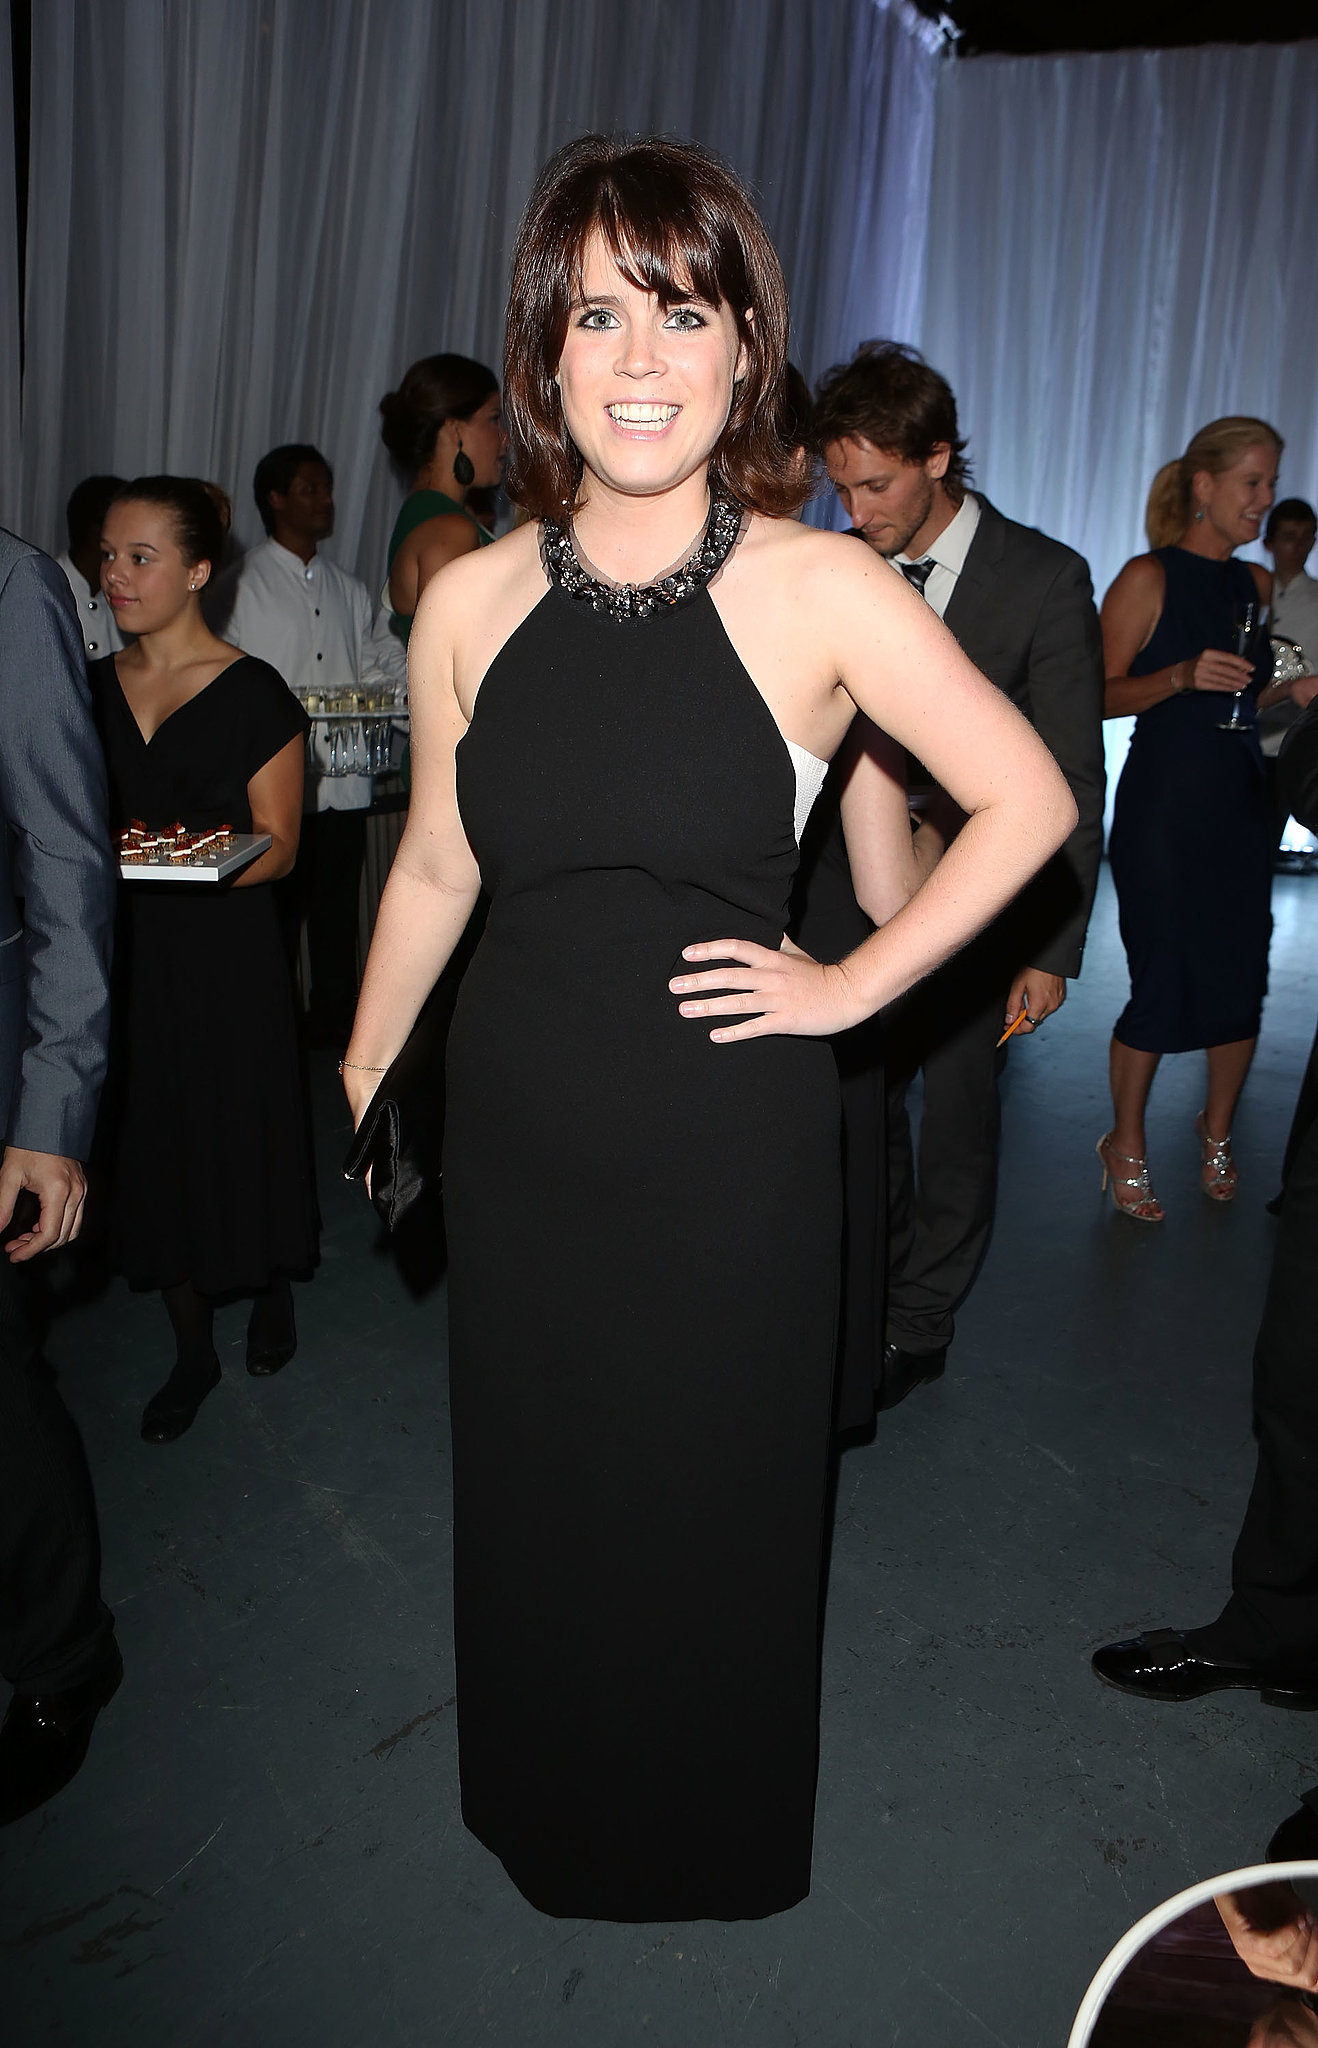 Princess Eugenie bared her arms in a black halter gown at the Novak Djokovic Foundation gala dinner.